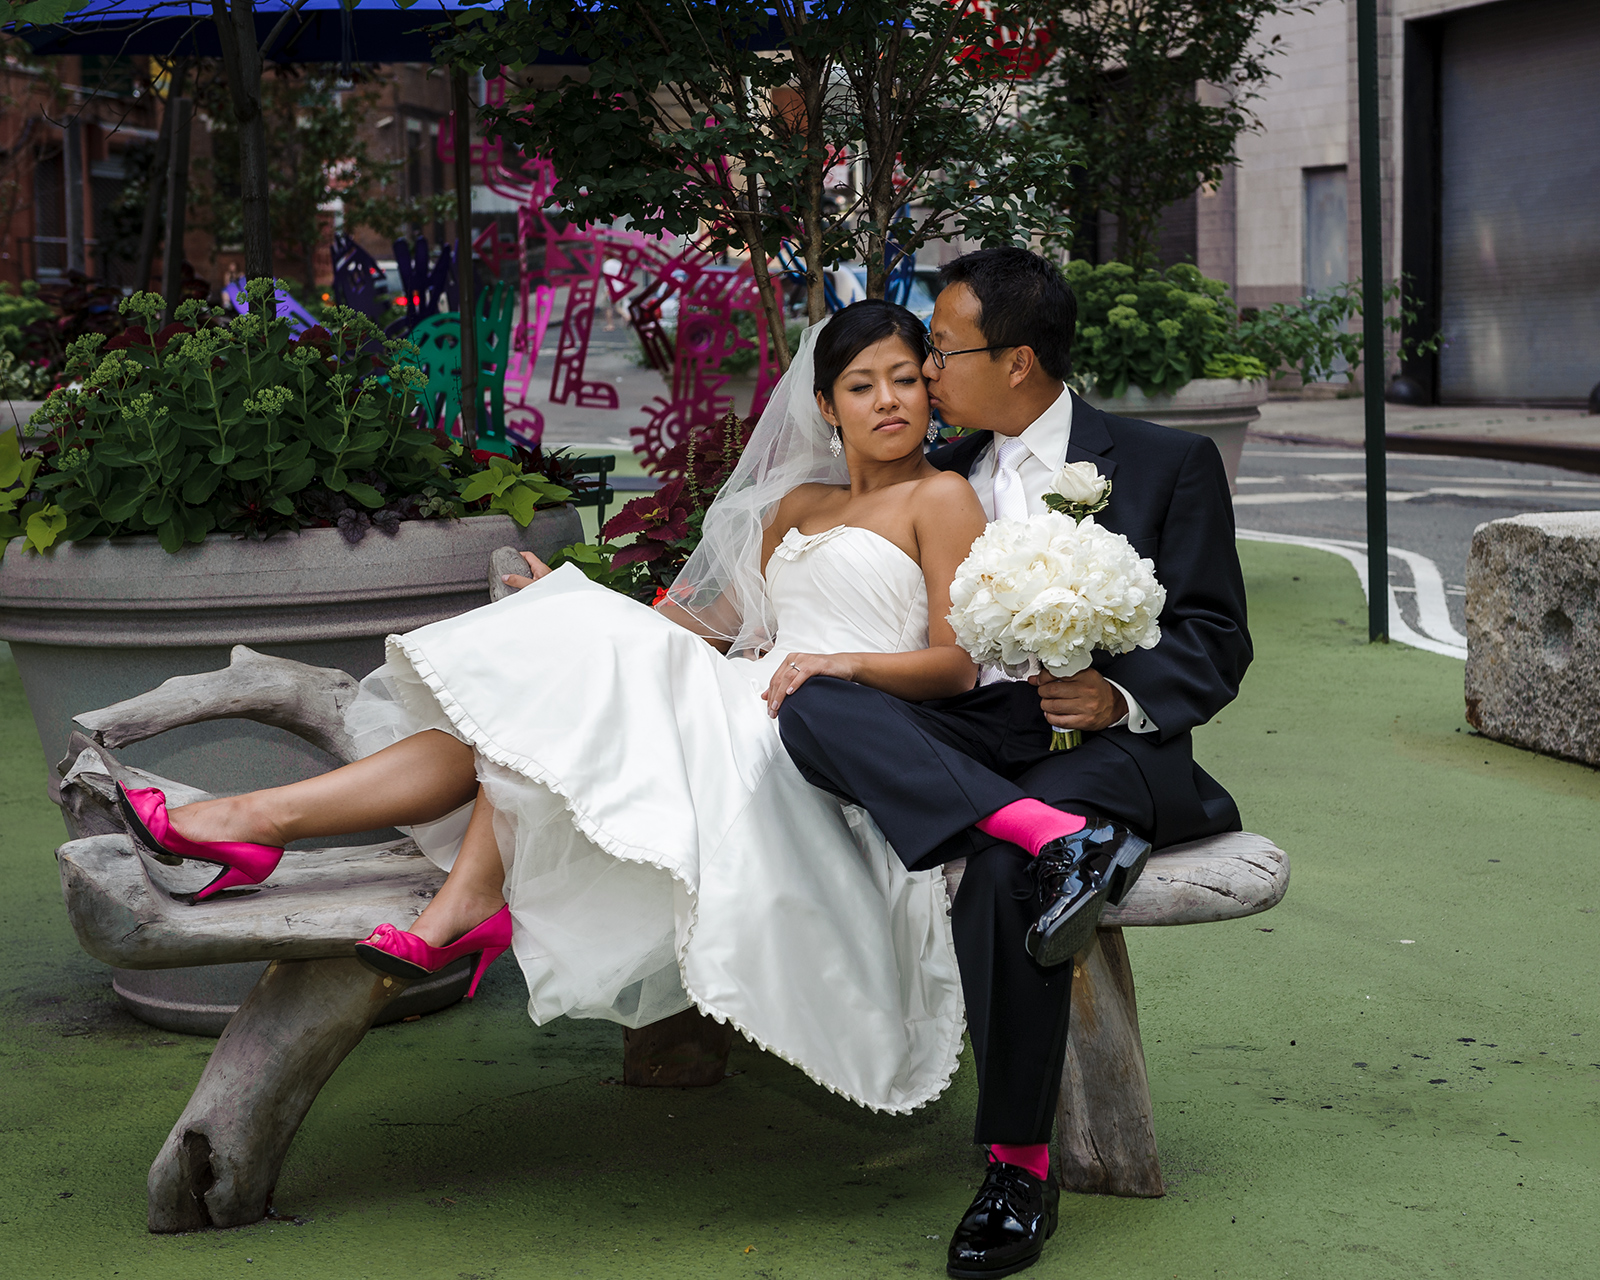 Dumbo park asian wedding portraits